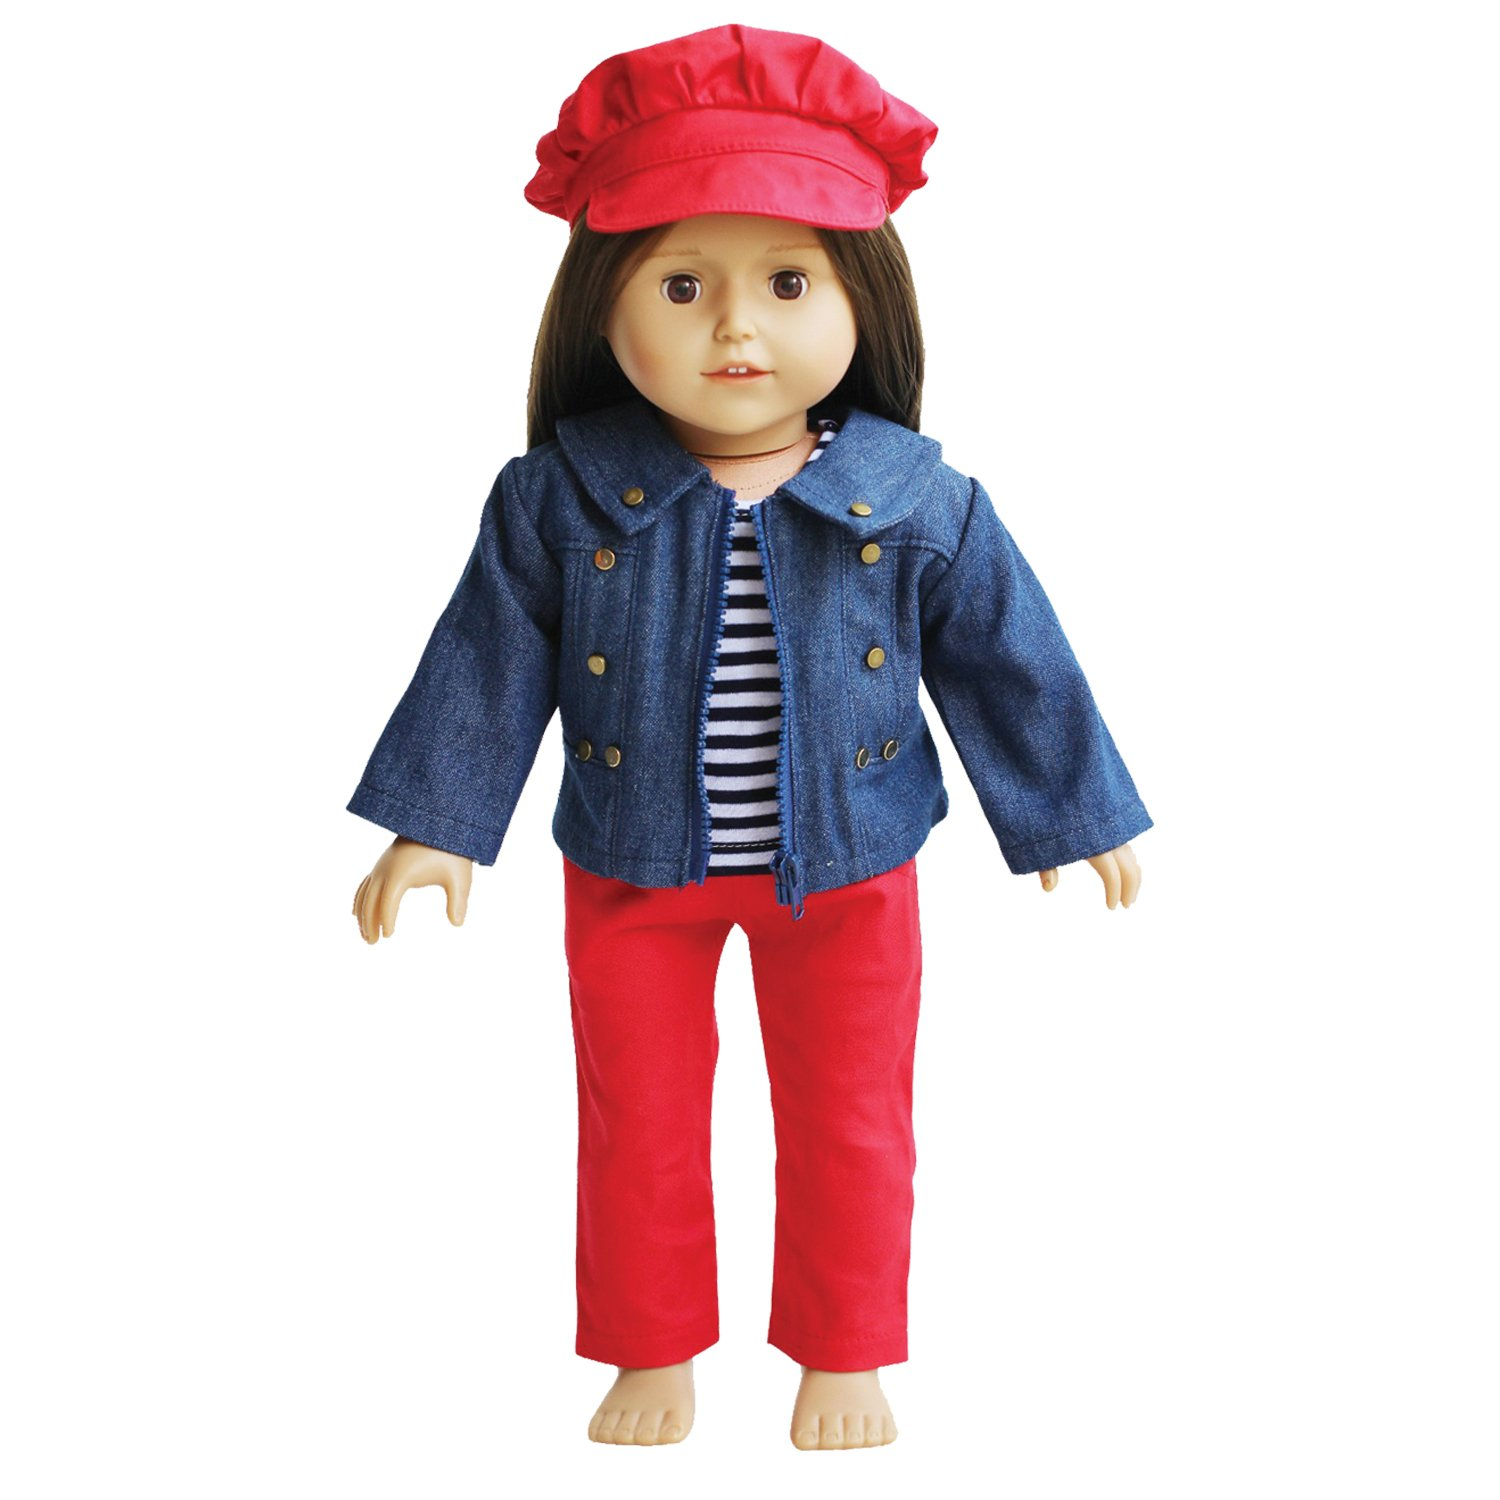 e98ec8f50c Amazon.com  Jeans Doll Outfit for 18 inch Dolls - Denim Jacket with Striped  Tee